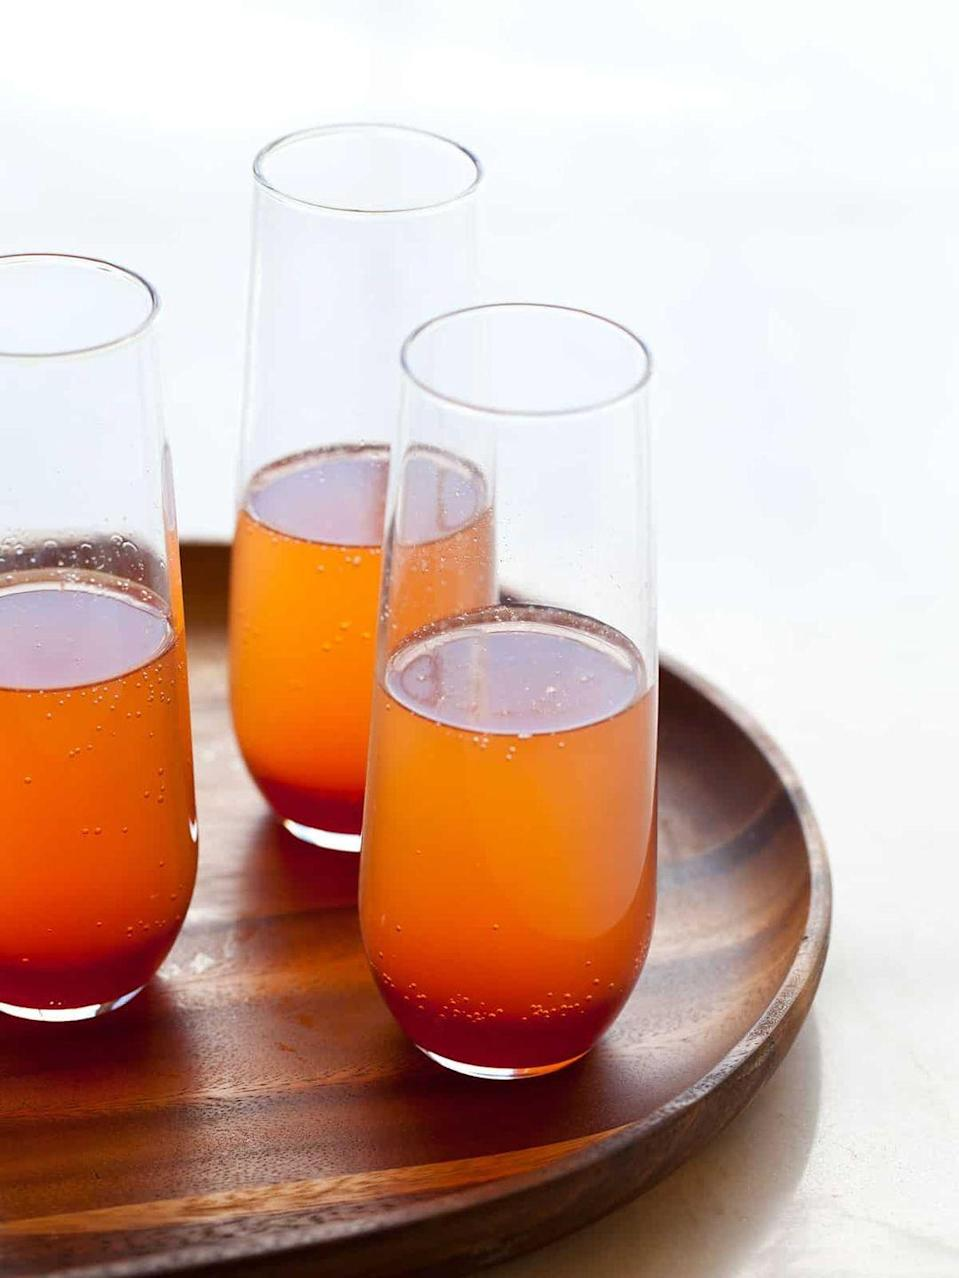 """<p>Blood orange, champagne, white wine, cinnamon—need we say more? This spiced punch is easy to throw together and its subtle spooky undertones will make it a go-to this Halloween season.</p><p><strong>Get the recipe at <a href=""""https://www.spoonforkbacon.com/spice-blood-orange-champagne-punch/"""" rel=""""nofollow noopener"""" target=""""_blank"""" data-ylk=""""slk:Spoon Fork Bacon"""" class=""""link rapid-noclick-resp"""">Spoon Fork Bacon</a>.</strong></p><p><a class=""""link rapid-noclick-resp"""" href=""""https://go.redirectingat.com?id=74968X1596630&url=https%3A%2F%2Fwww.walmart.com%2Fip%2FLibbey-Polaris-16-25-oz-Clear-Drinking-Glasses-8-ct-Box%2F54562994&sref=https%3A%2F%2Fwww.thepioneerwoman.com%2Fholidays-celebrations%2Fg36792938%2Fhalloween-punch-recipes%2F"""" rel=""""nofollow noopener"""" target=""""_blank"""" data-ylk=""""slk:SHOP GLASSES"""">SHOP GLASSES</a></p>"""